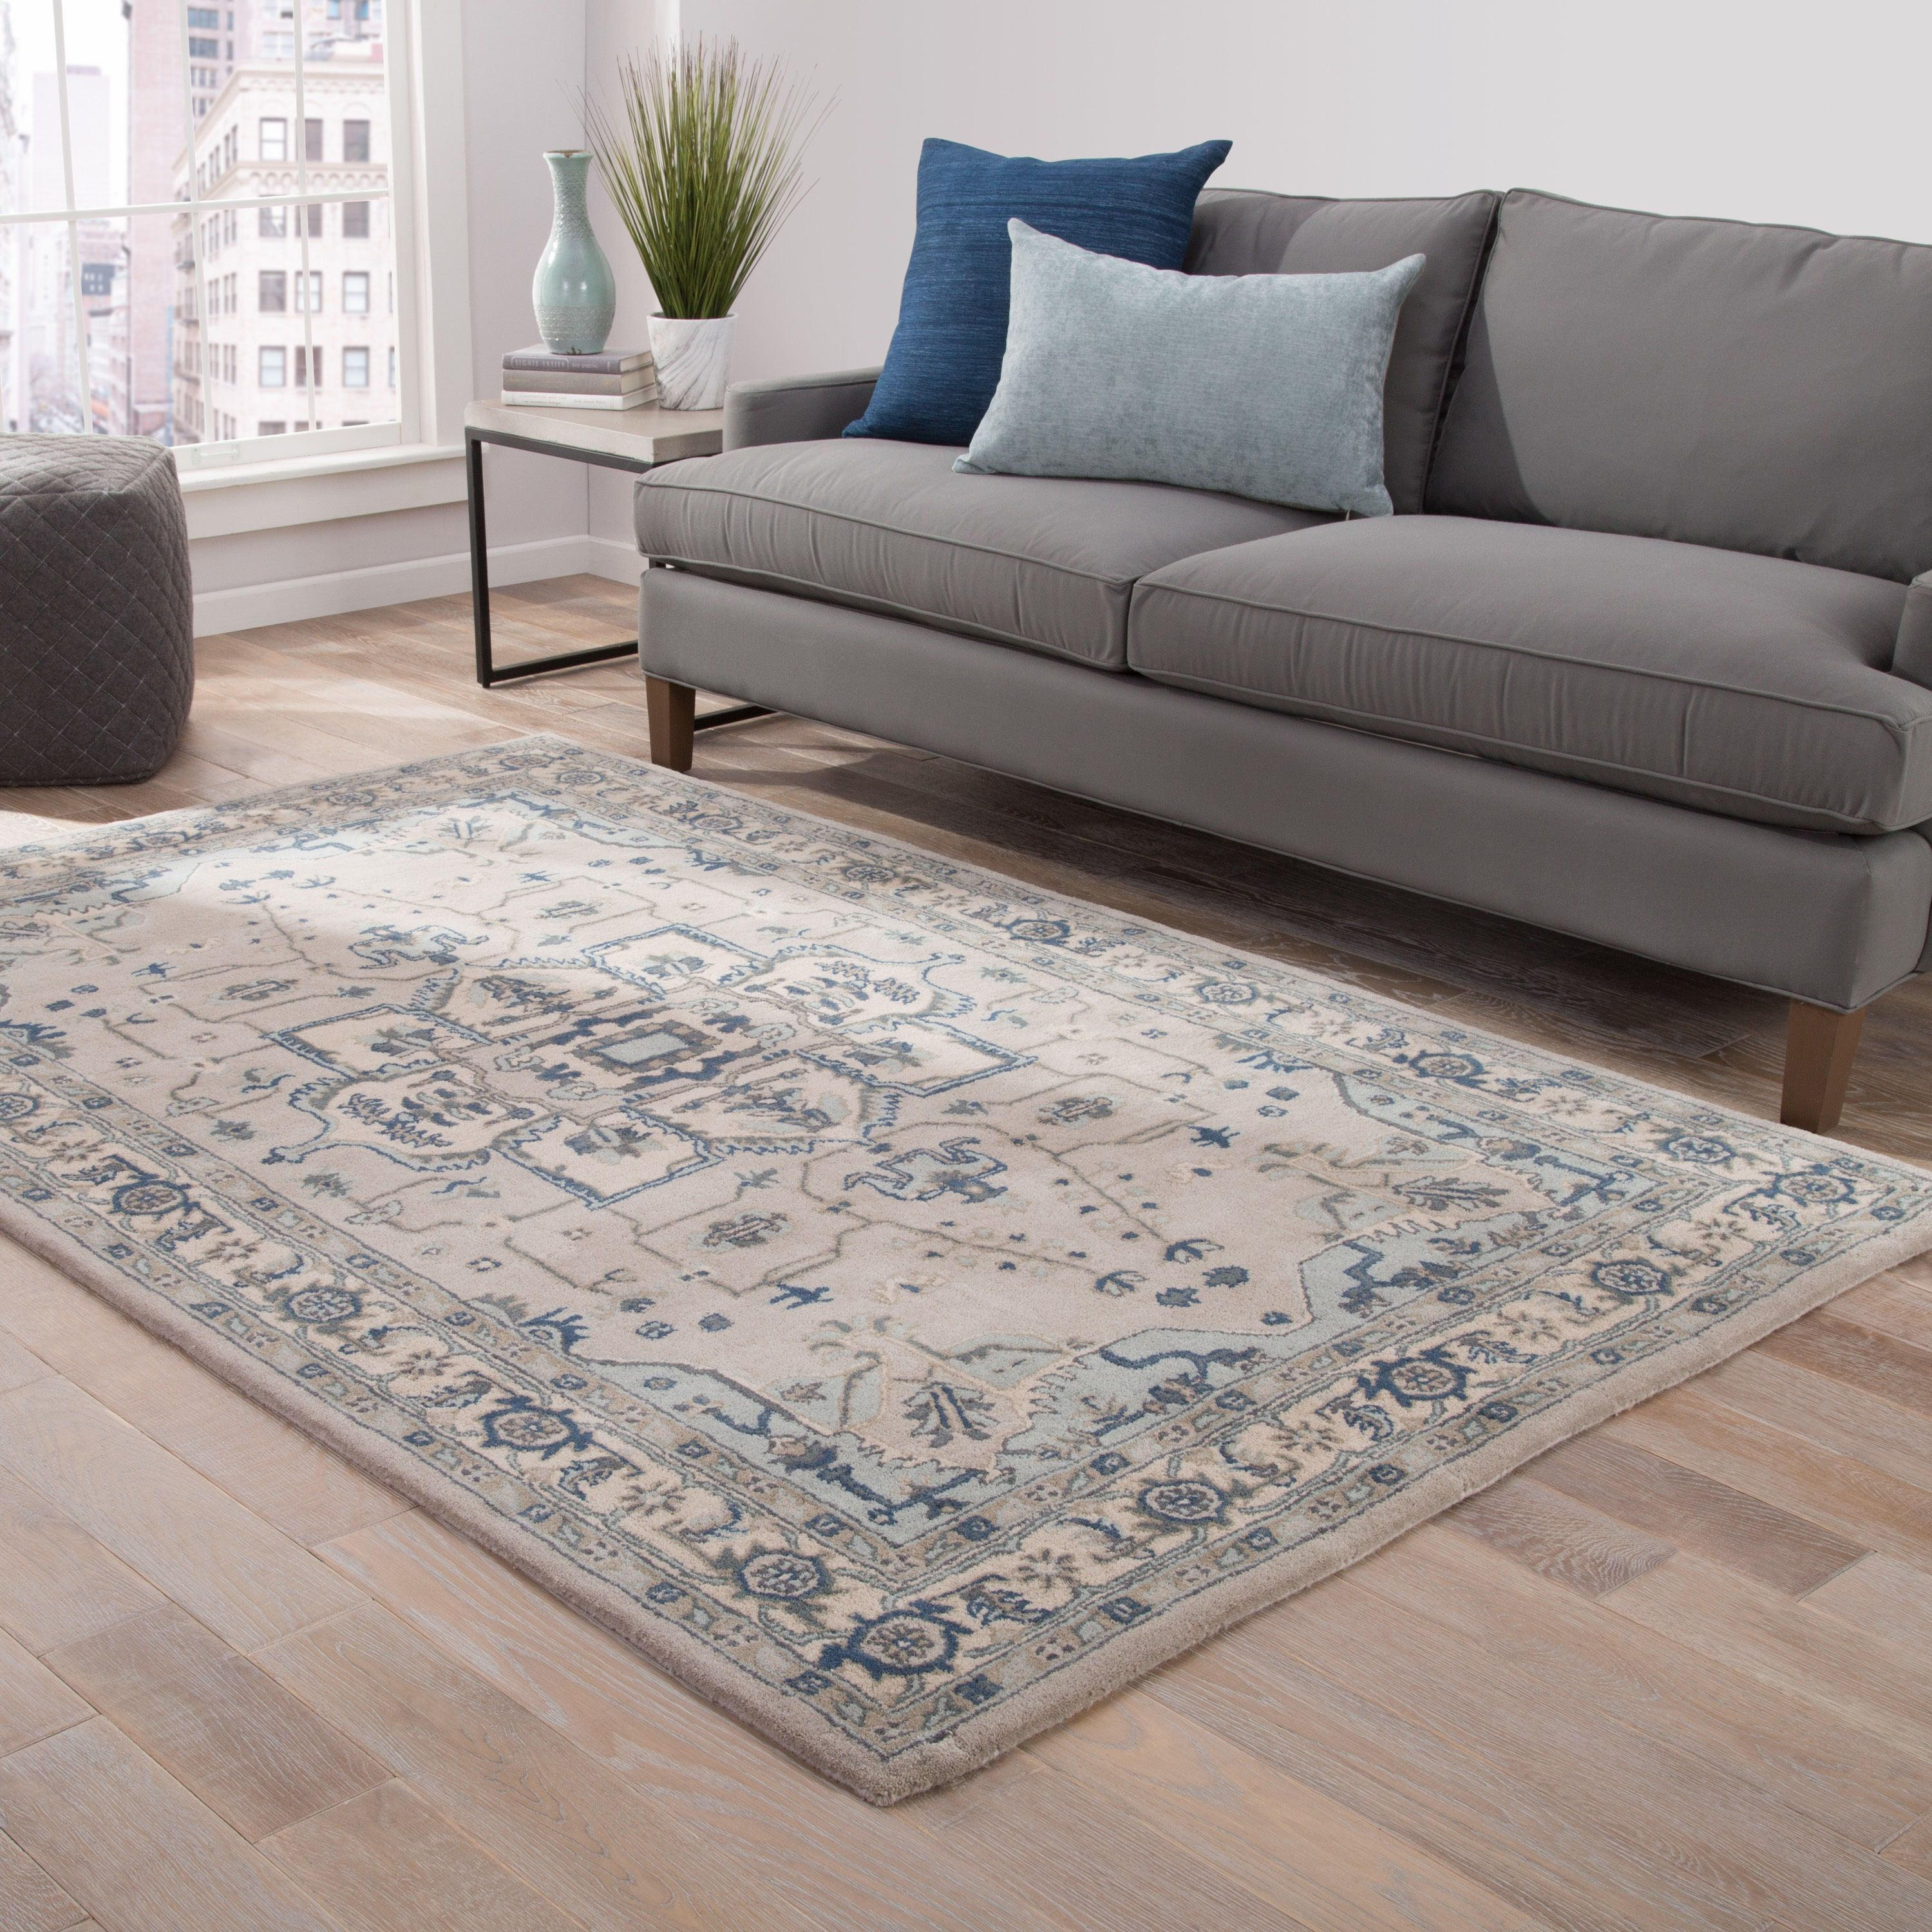 rugs adorable blue living green depot kitchen small gray inches outdoor elyse room area virgil solid home mohawk threshold for colored sizes grey rug taupe bedroom target and